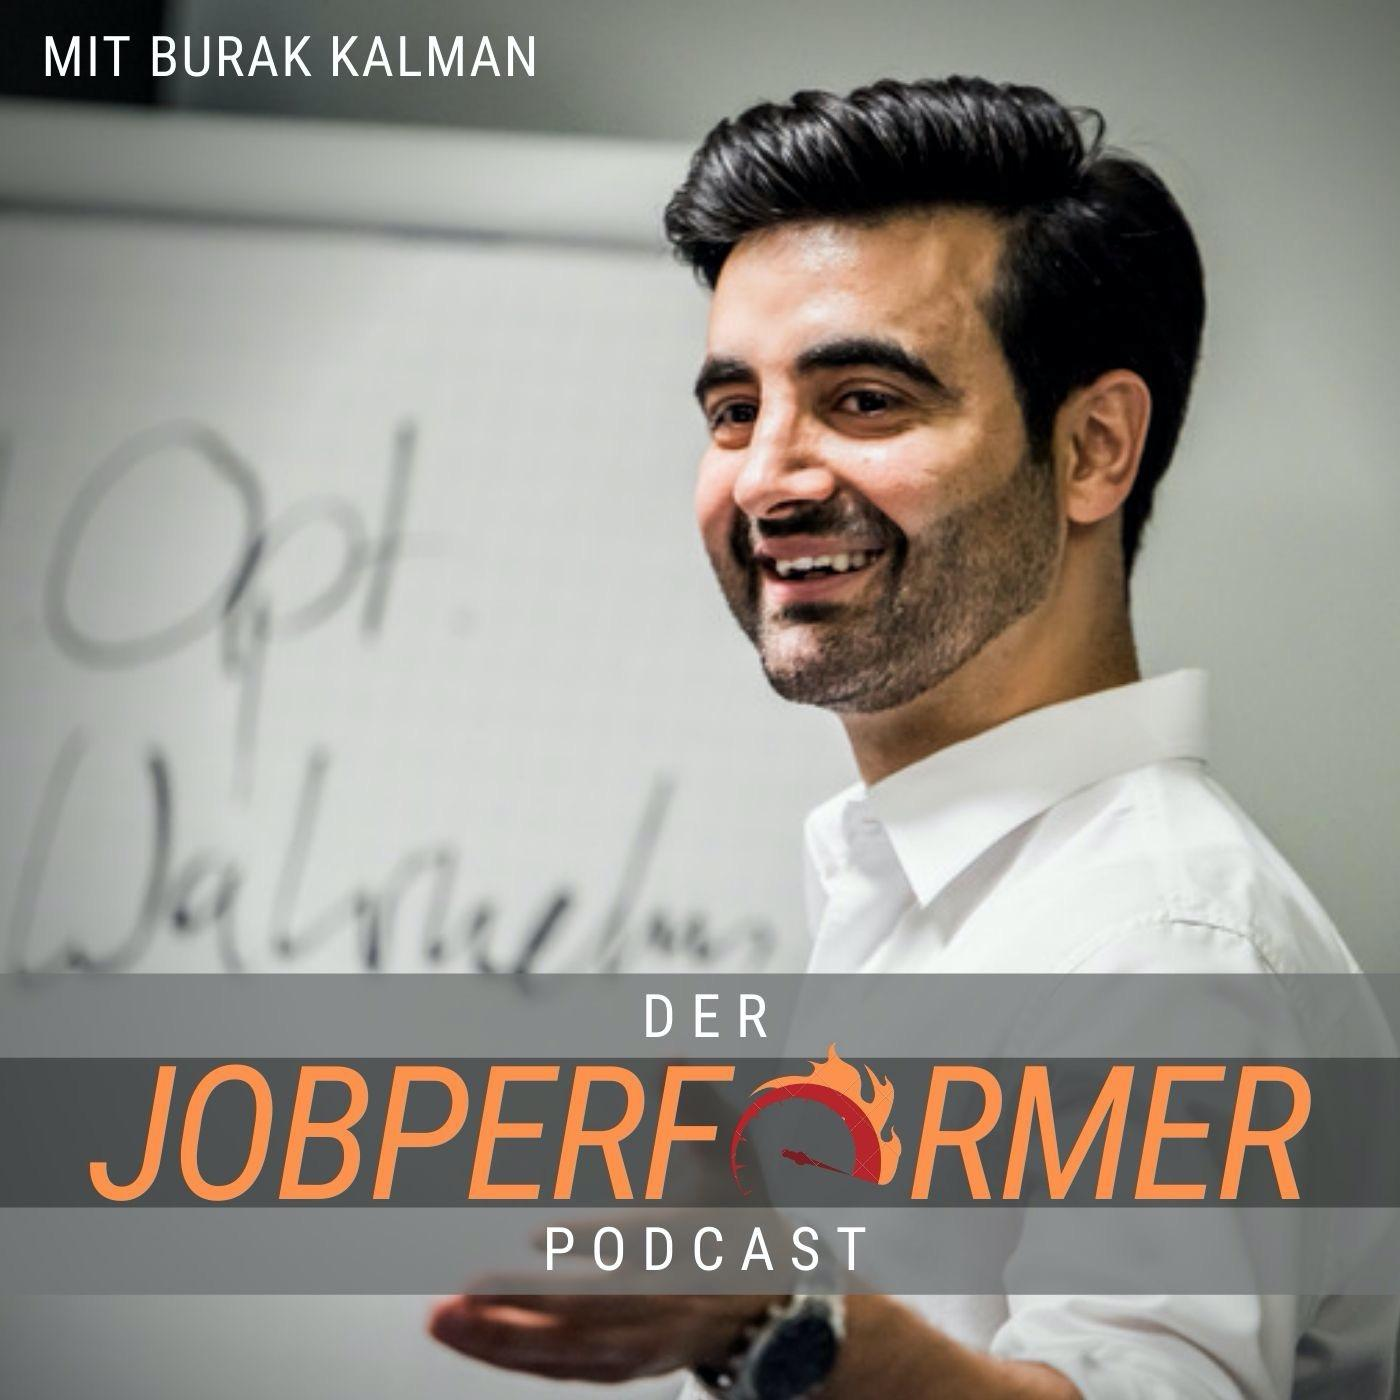 burak kalman jobperformer podcast itunes spotify